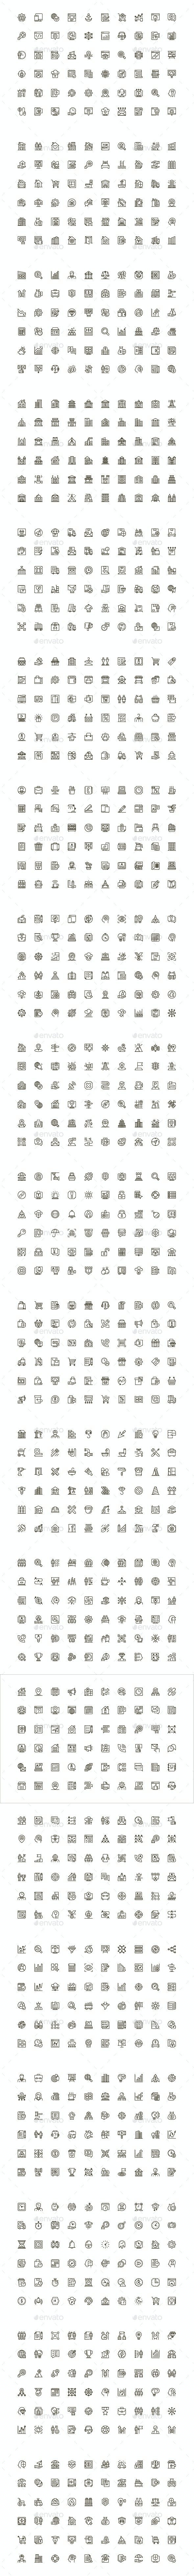 Unique Vector Line Icons Pack - Business Icons